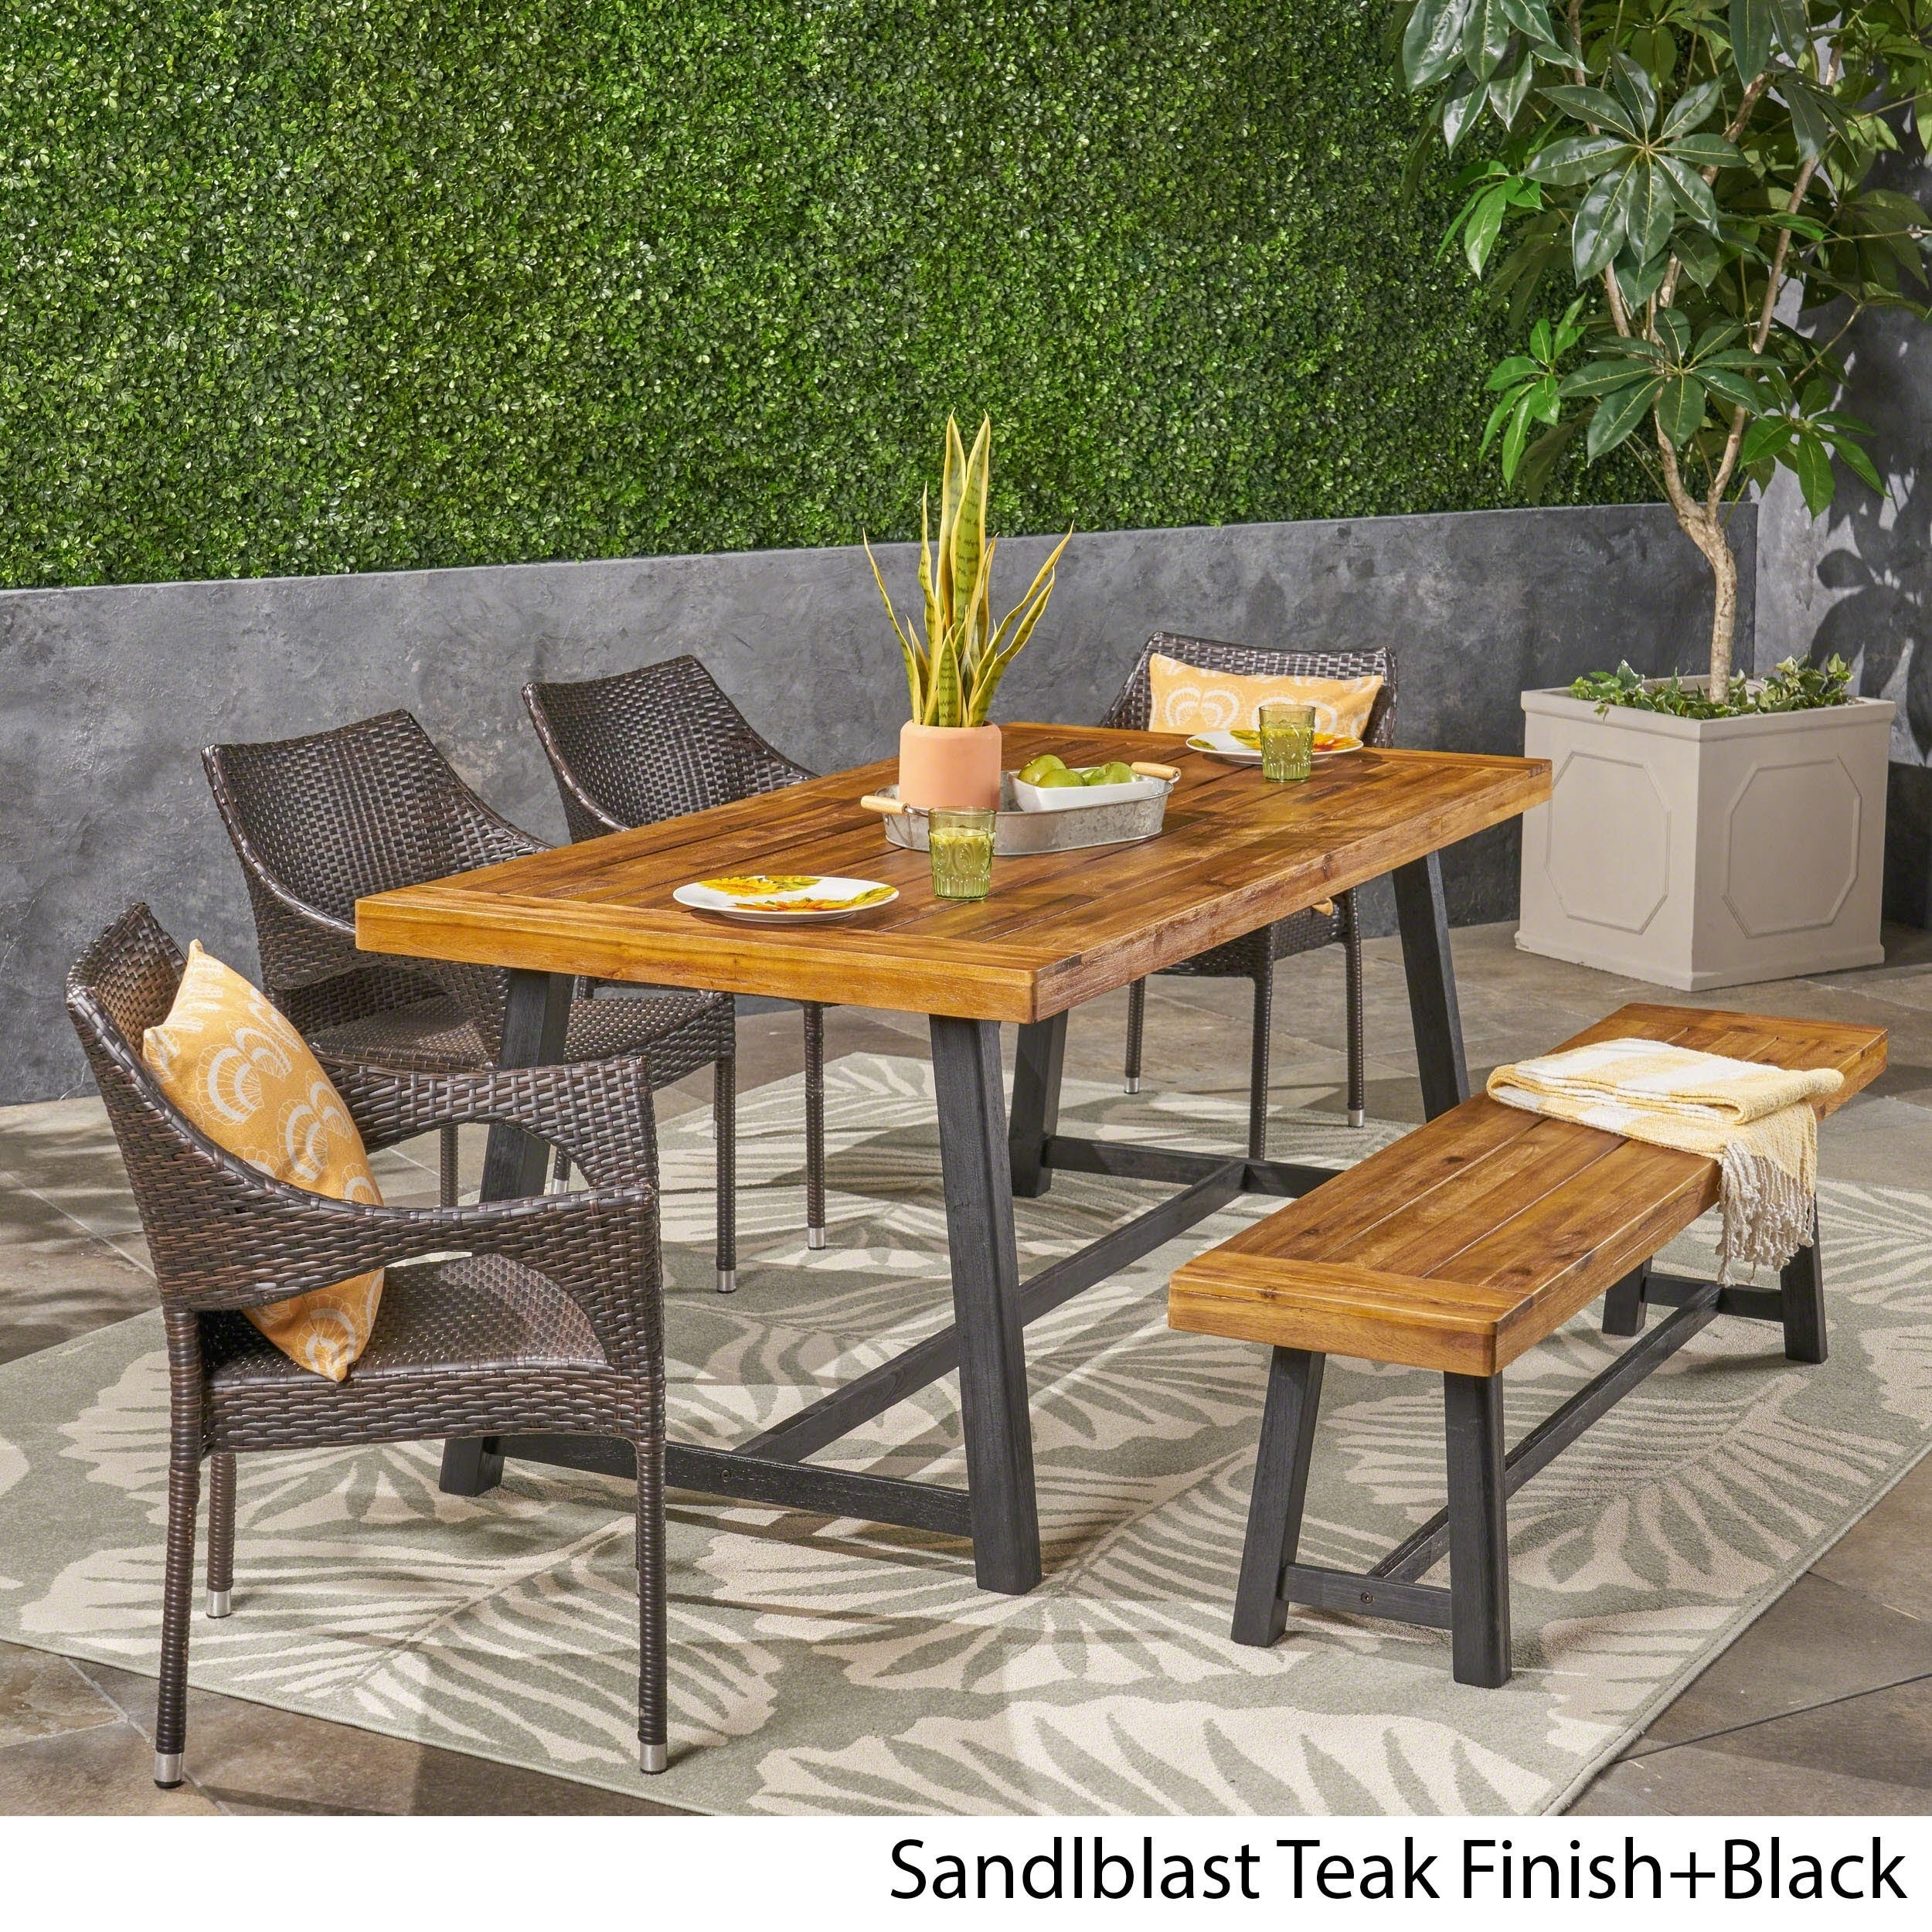 Brecken Outdoor 6 Piece Wood And Wicker Dining Set With Stacking Chairs And Benchchristopher Knight Home Intended For Brecken Teak Garden Benches (View 4 of 25)